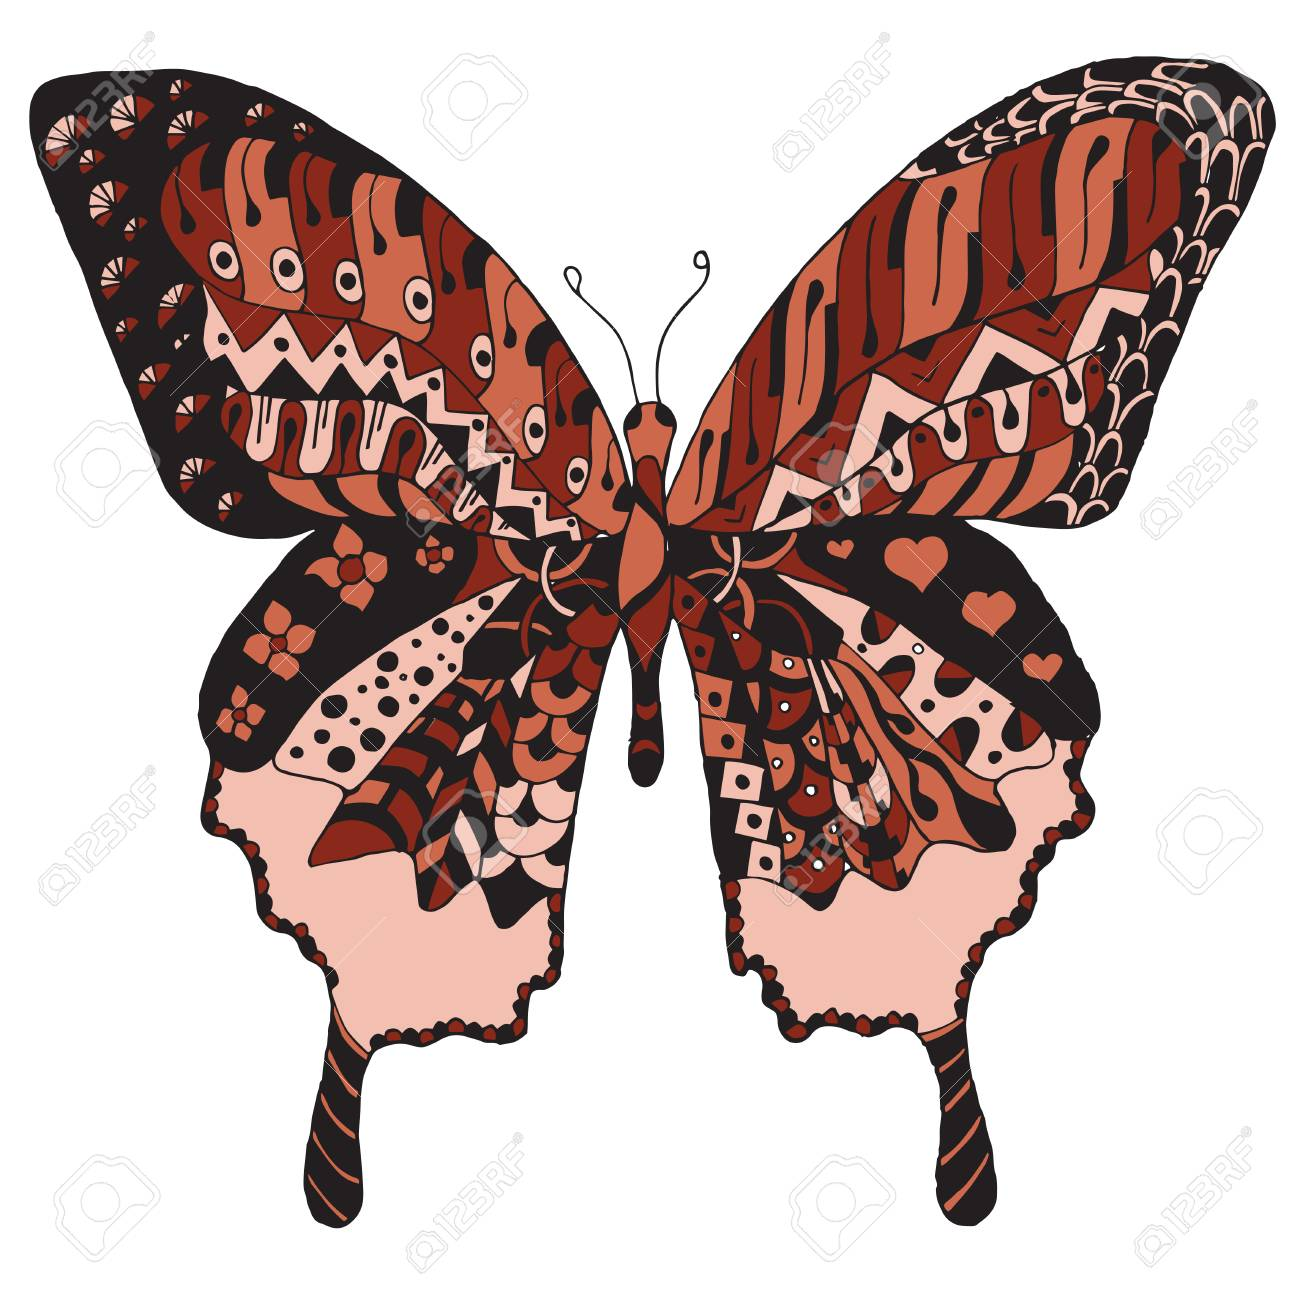 Artistically hand drawn, stylized butterfly vector, illustration, freehand pencil. Print for t-shirts. - 77601972